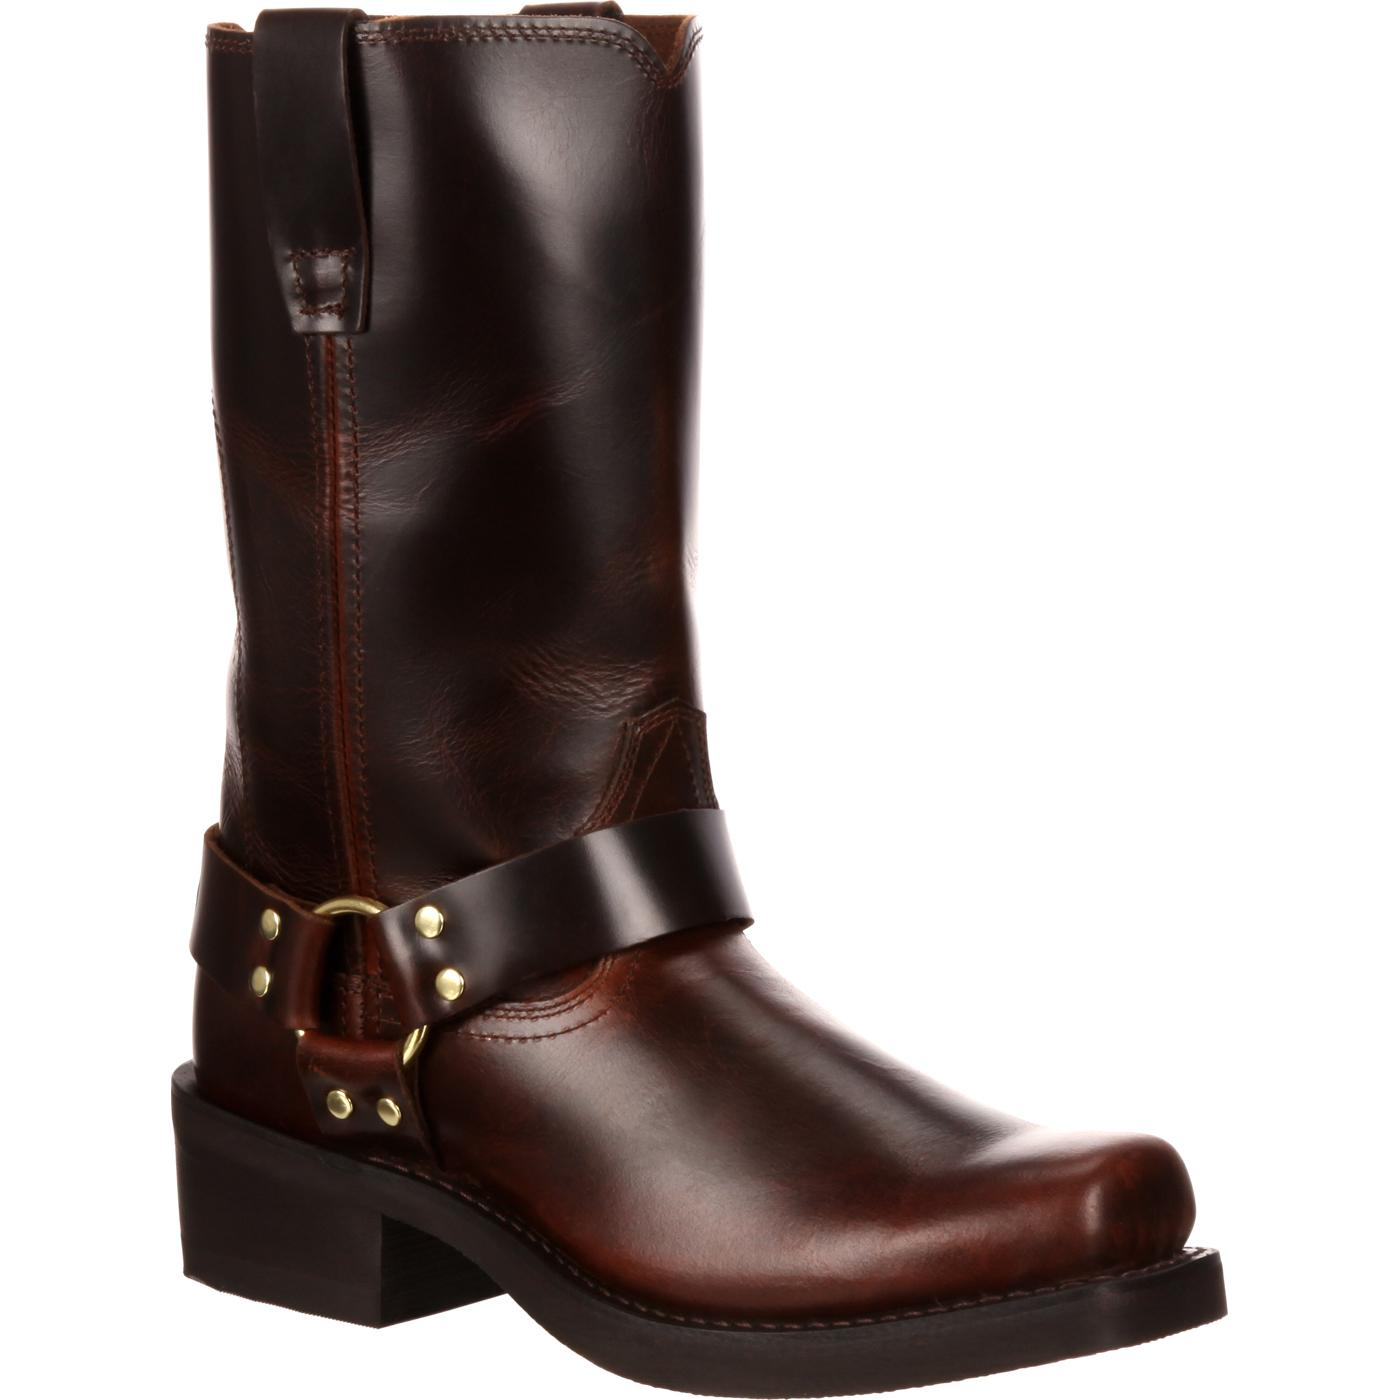 Durango: Men's Brown Leather Harness Boot, style #DB514